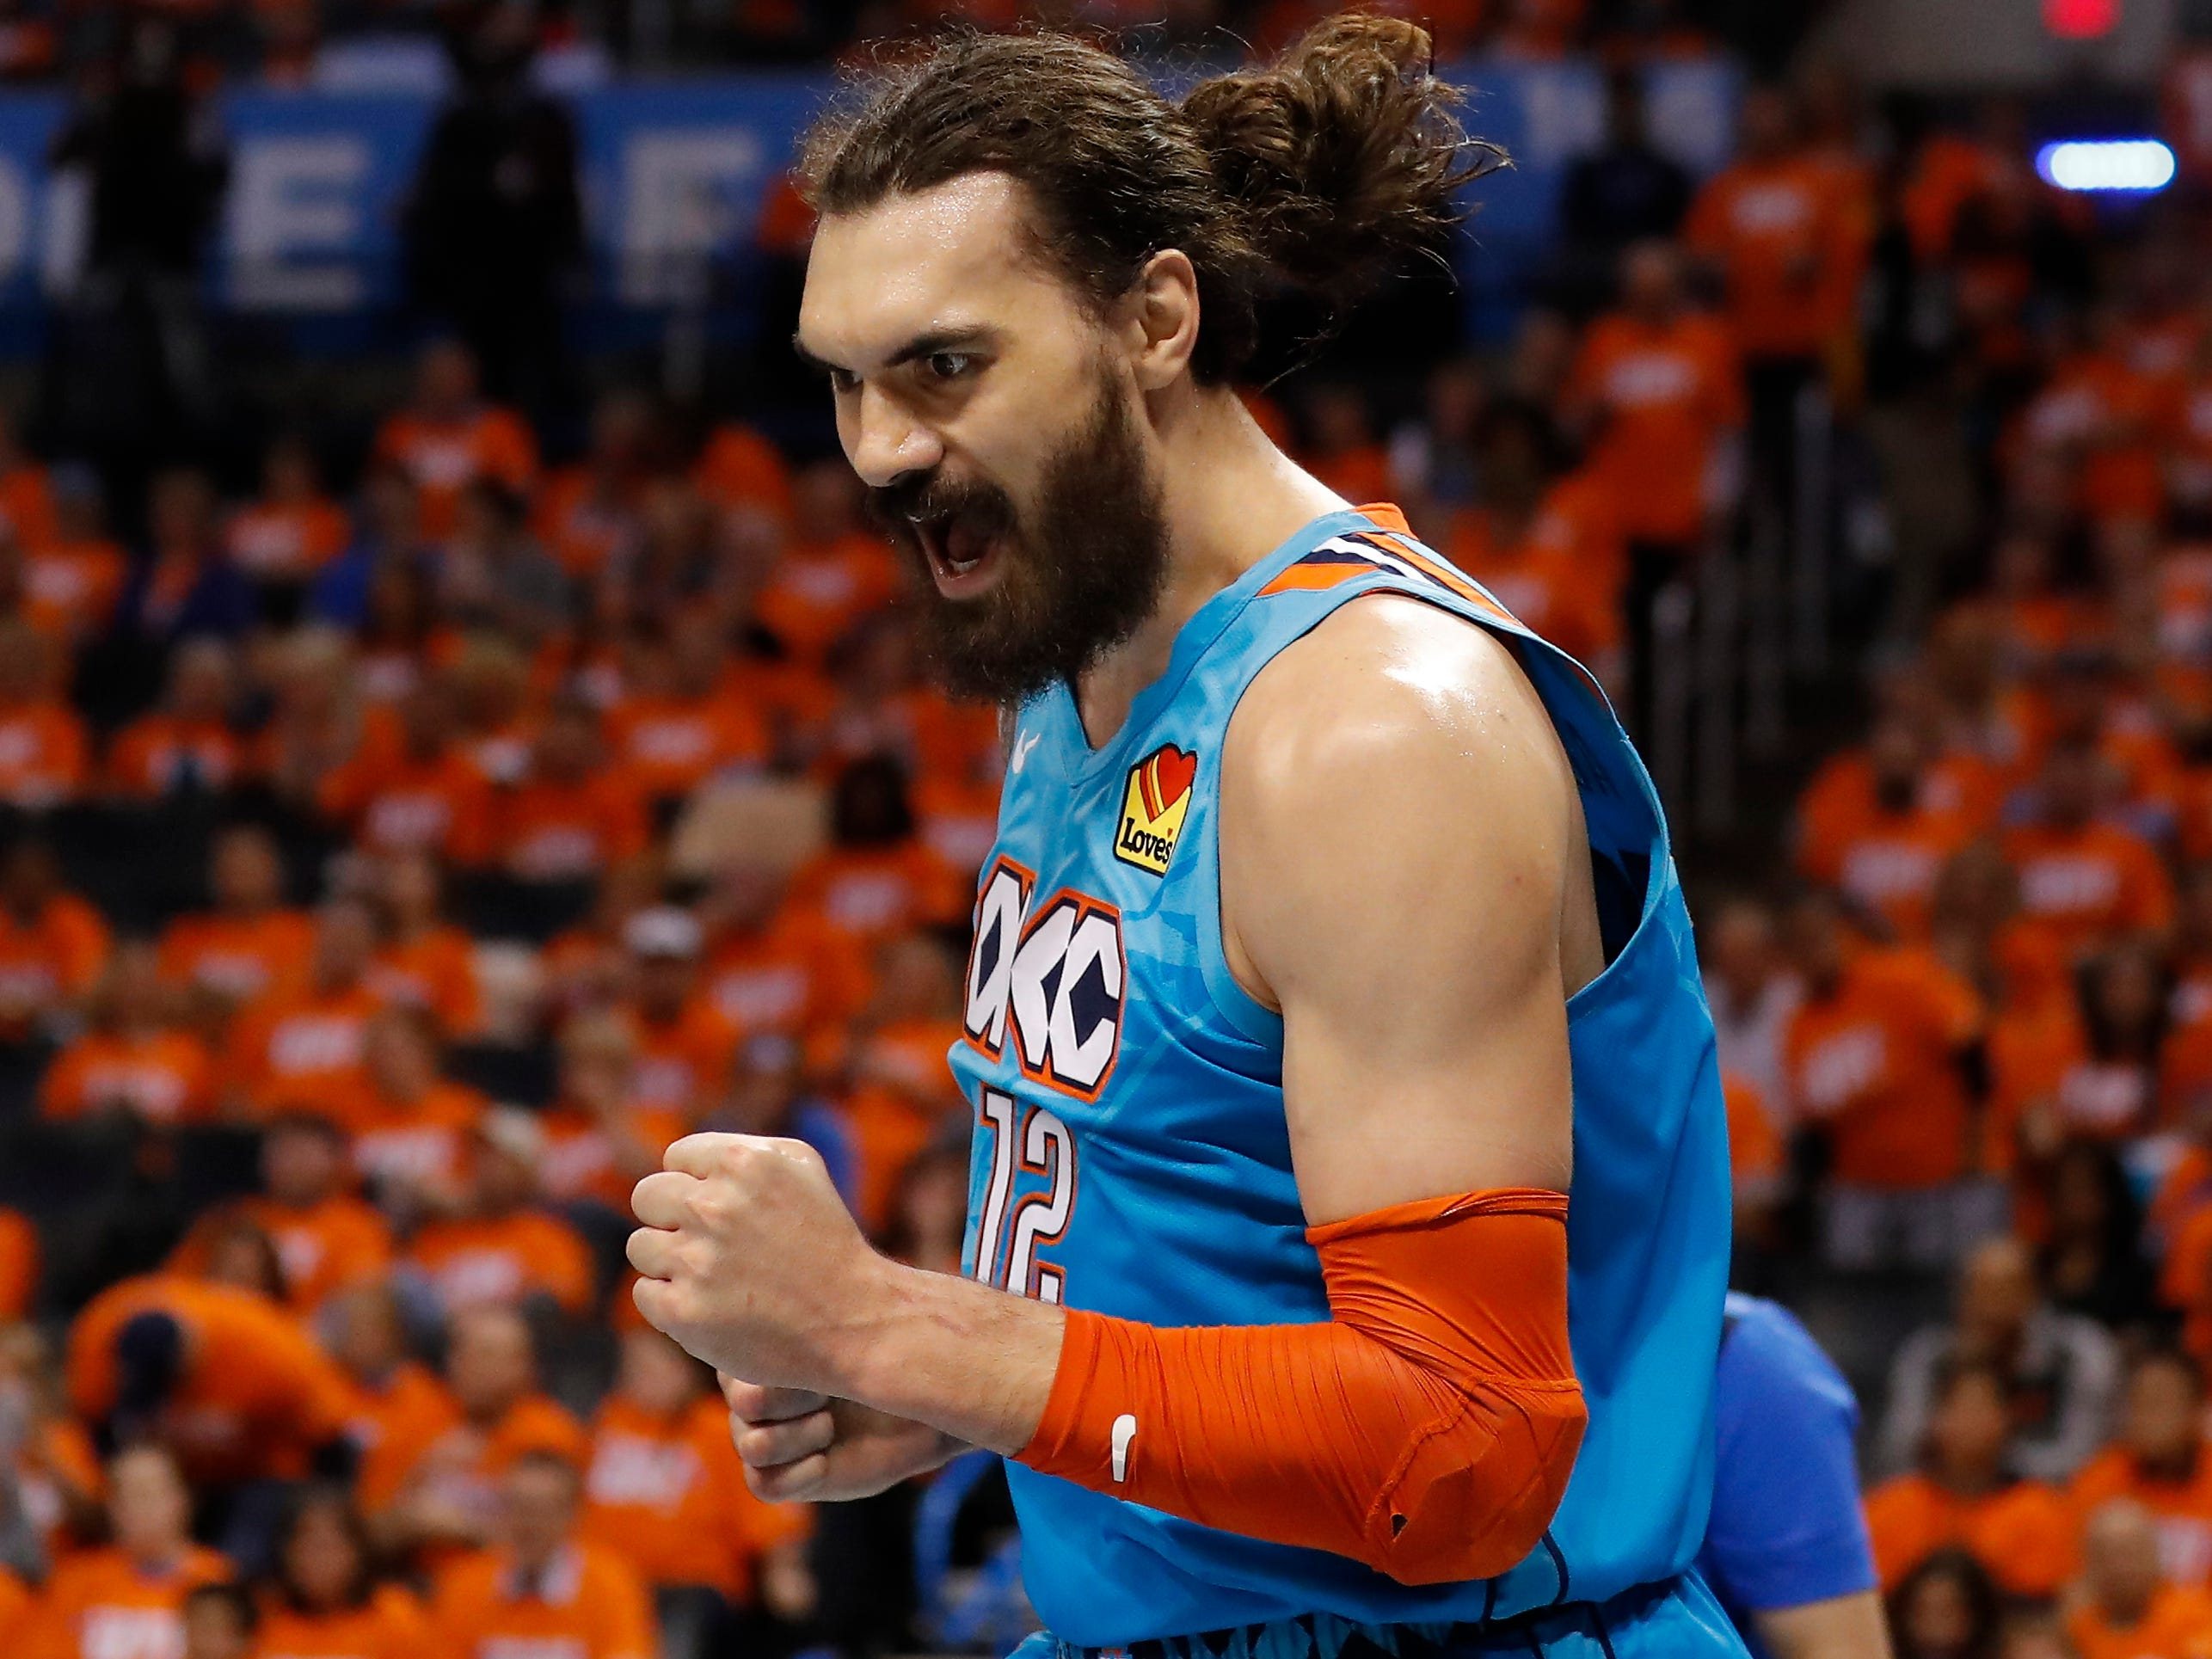 April 19: Thunder center Steven Adams gets fired up after a second-half bucket during Game 3 against the Trail Blazers.